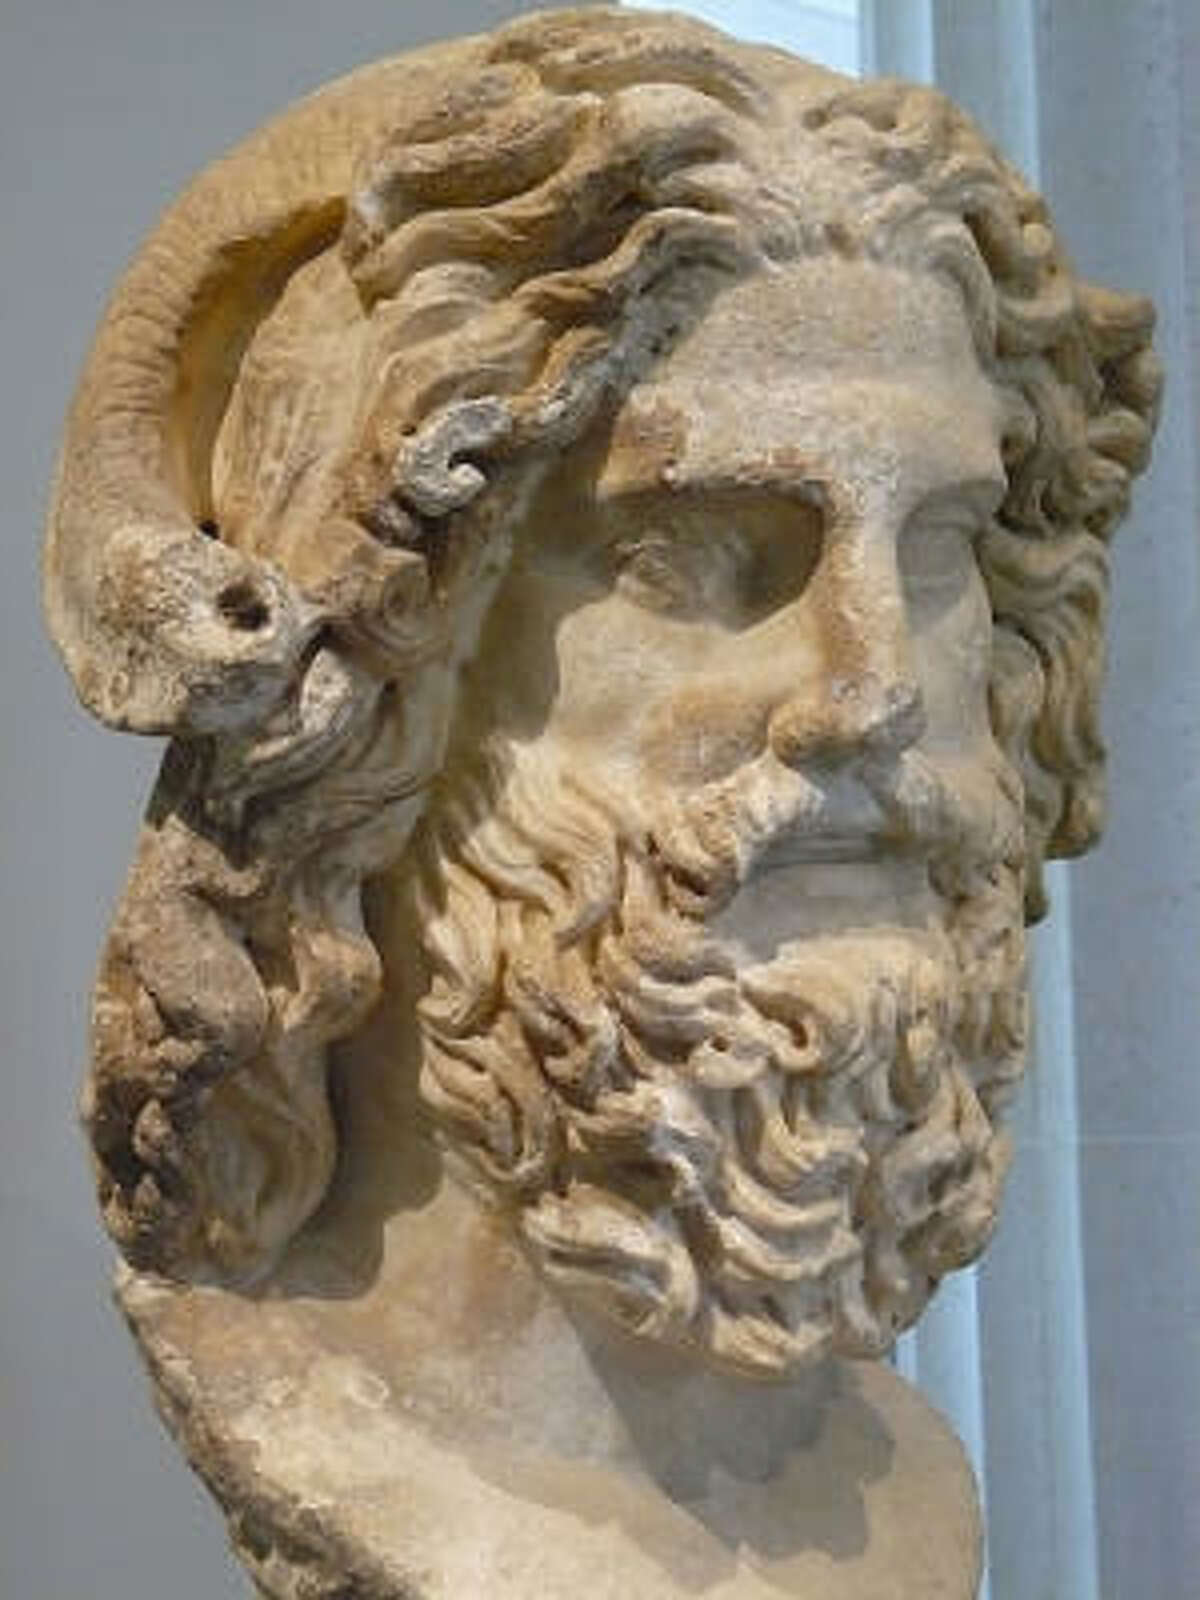 Greek Mythology Donning a beard goes as far back as ancient Greece. The Greek mythological gods Zeus, of whom a statue is pictured here, Poseidon and Hermes, Pan and Dionysus were all depicted with beards.